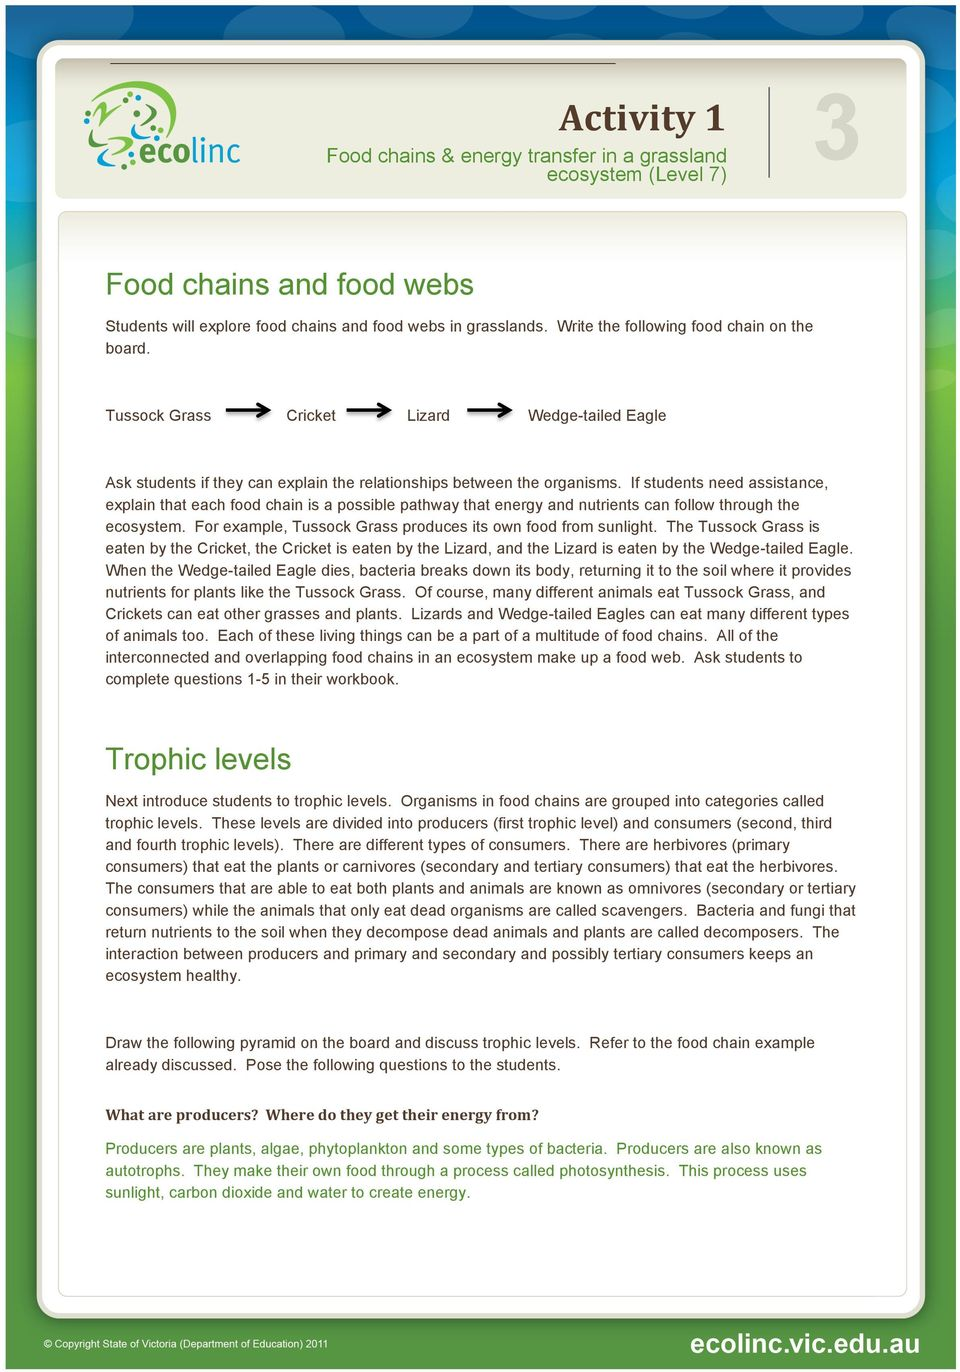 If students need assistance, explain that each food chain is a possible pathway that energy and nutrients can follow through the ecosystem.